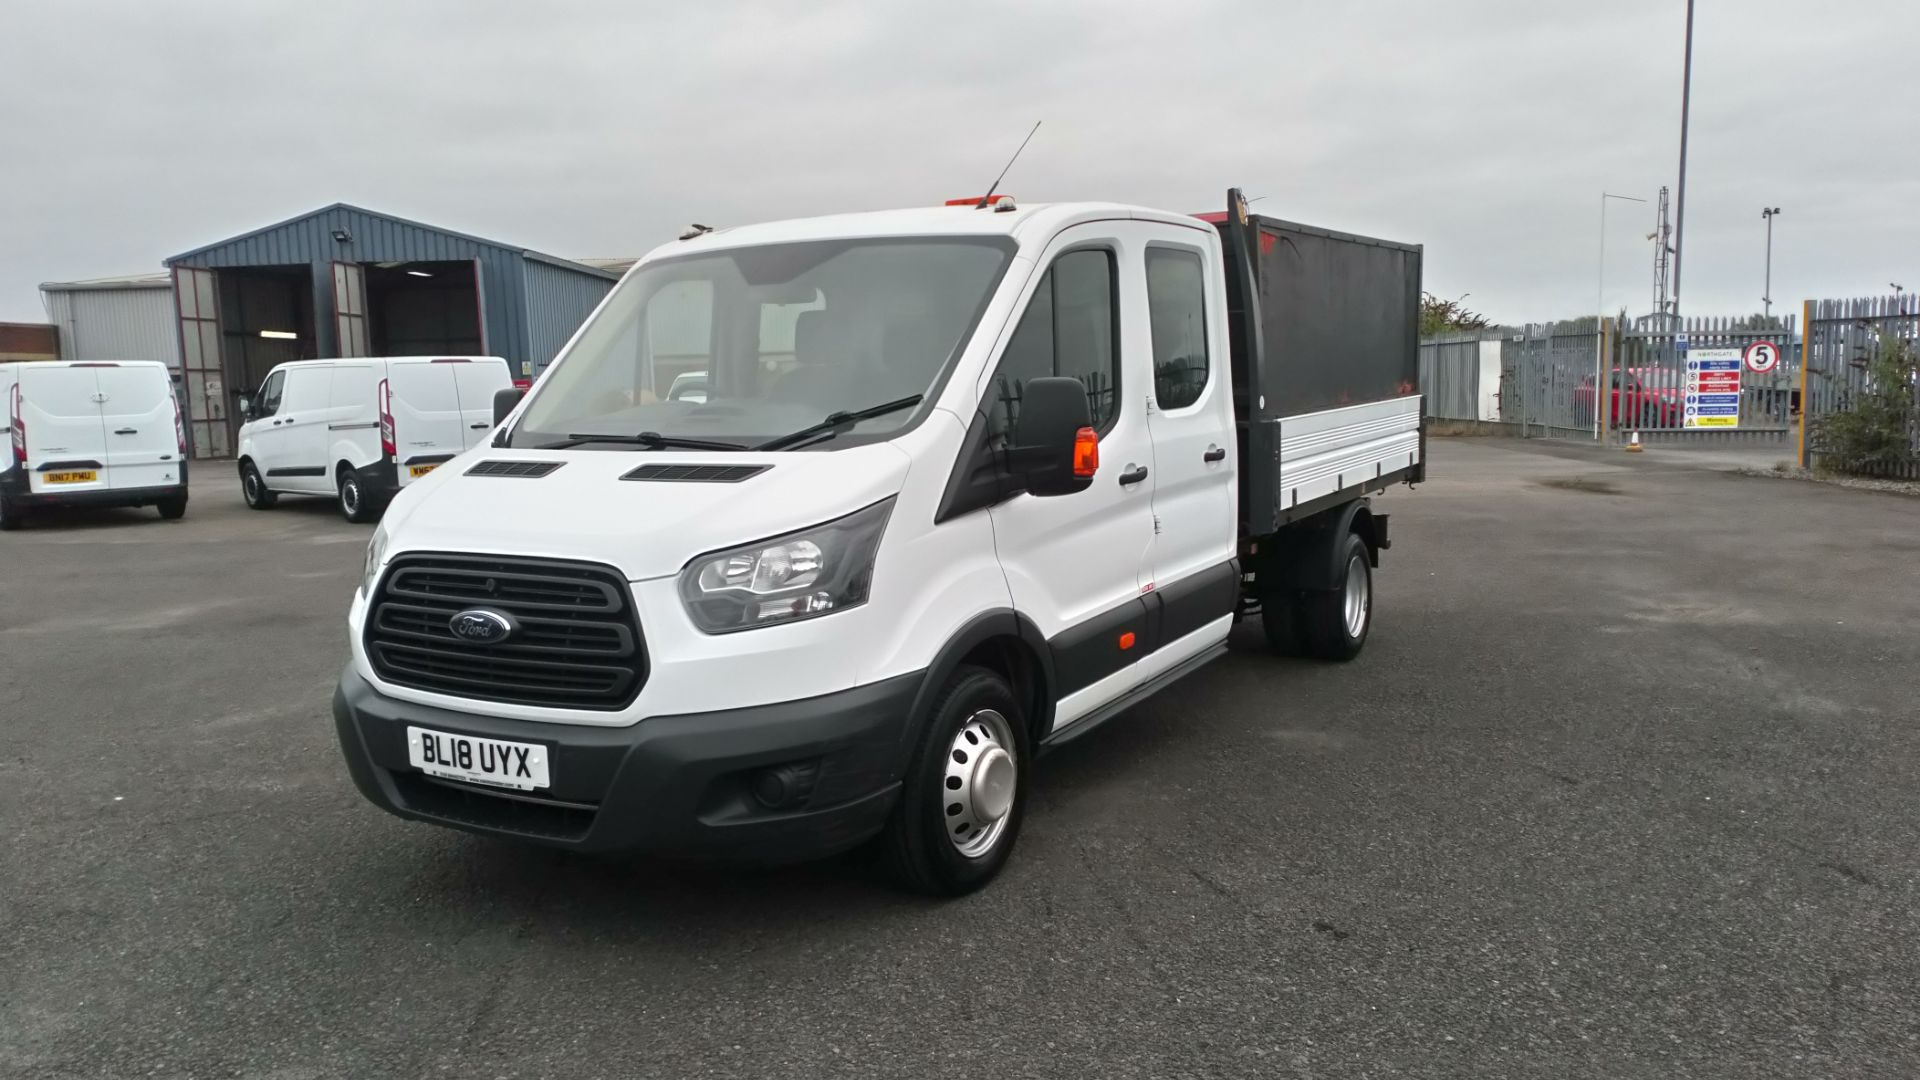 2018 Ford Transit 2.0 Tdci 130Ps H2 Double Cab Tipper (BL18UYX) Image 3